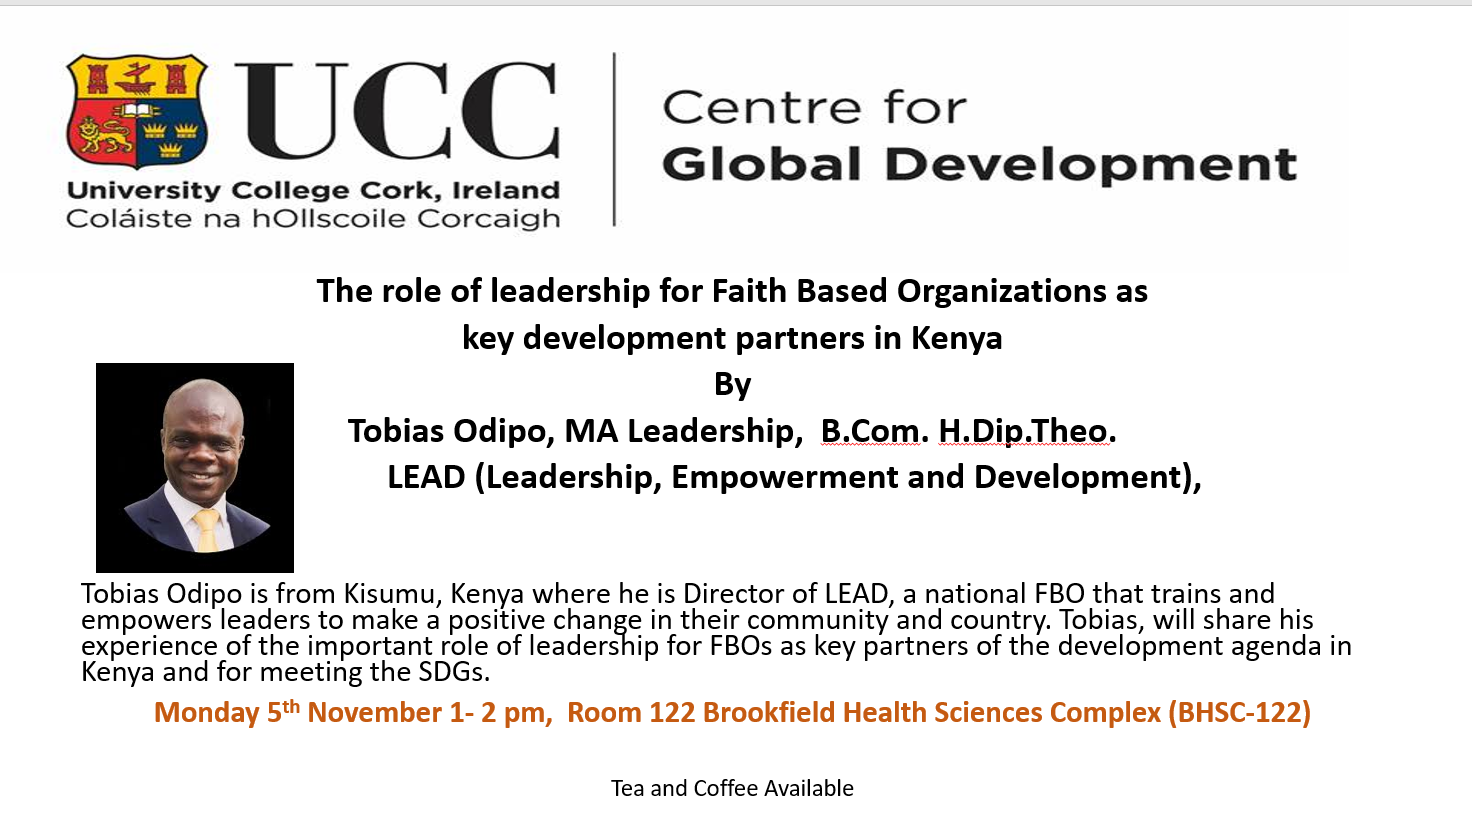 UCC Centre for Global Development - November 5th - Seminar on Leadership